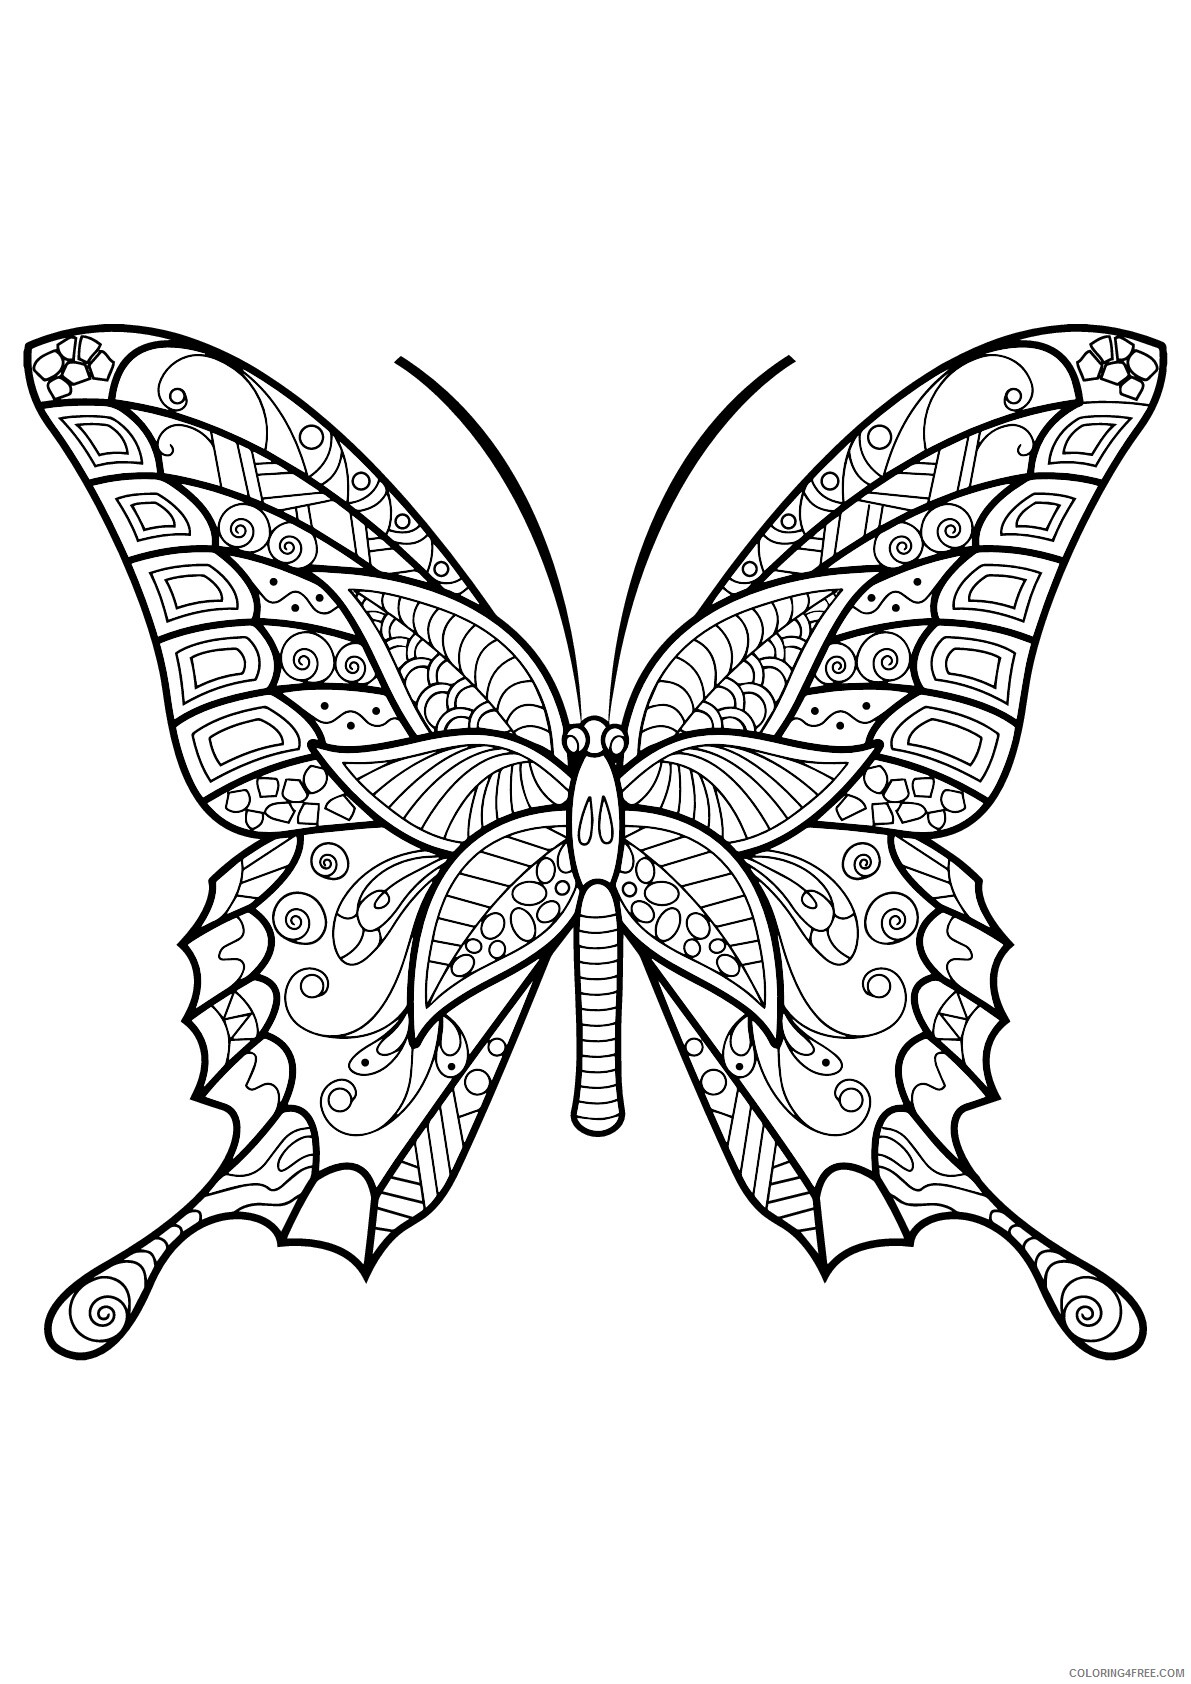 Adult Butterfly Coloring Pages Butterfly Adult Printable 2020 179 Coloring4free